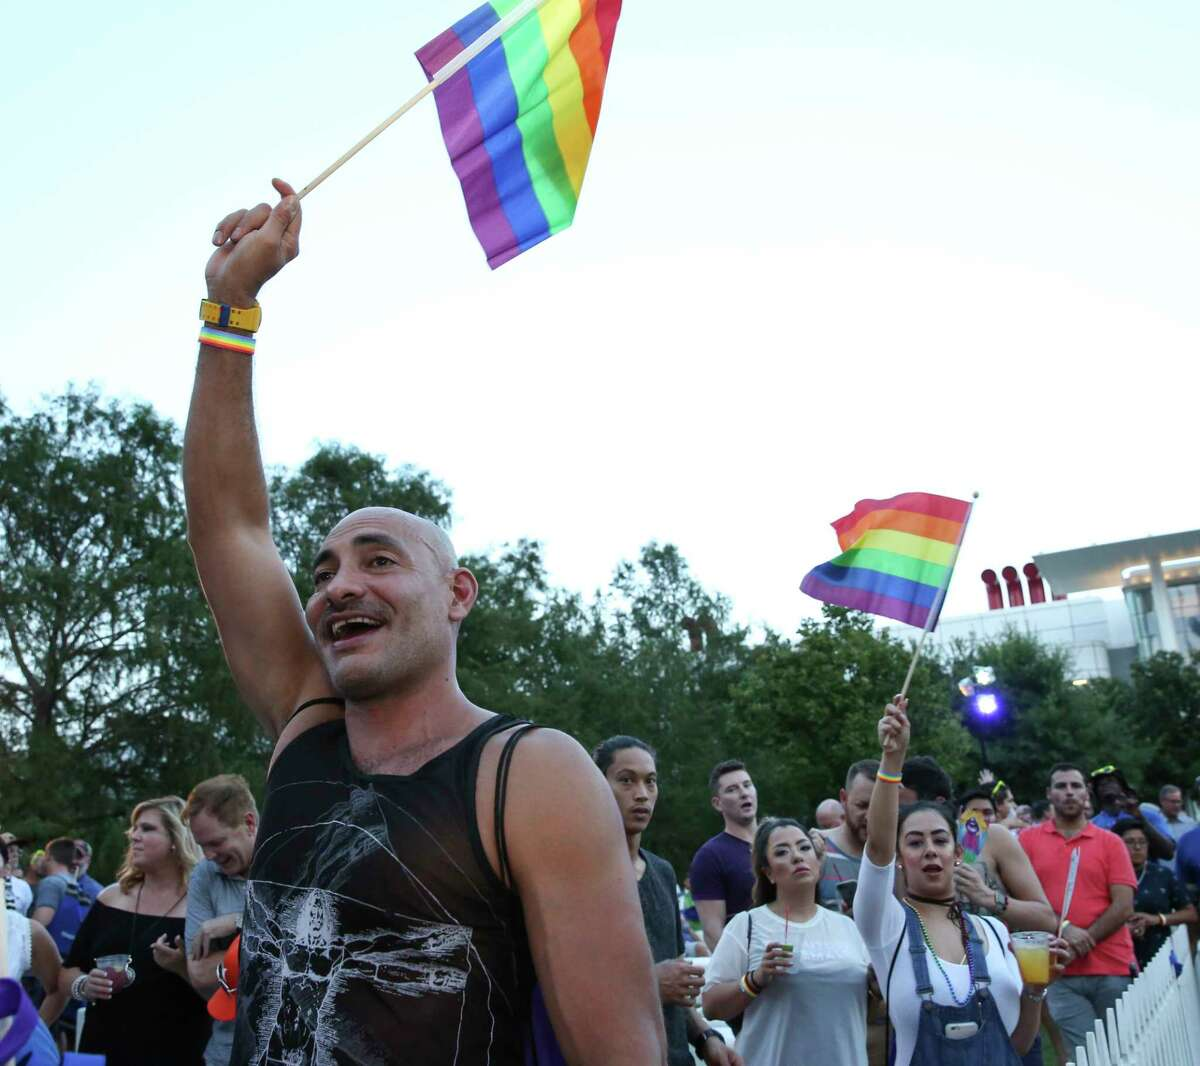 Mark Gongora waves a rainbow flag as he sings along at the seventh annual Rainbow on the Green musical event Friday at Discovery Green, part of the Pride Houston weekend celebrations.